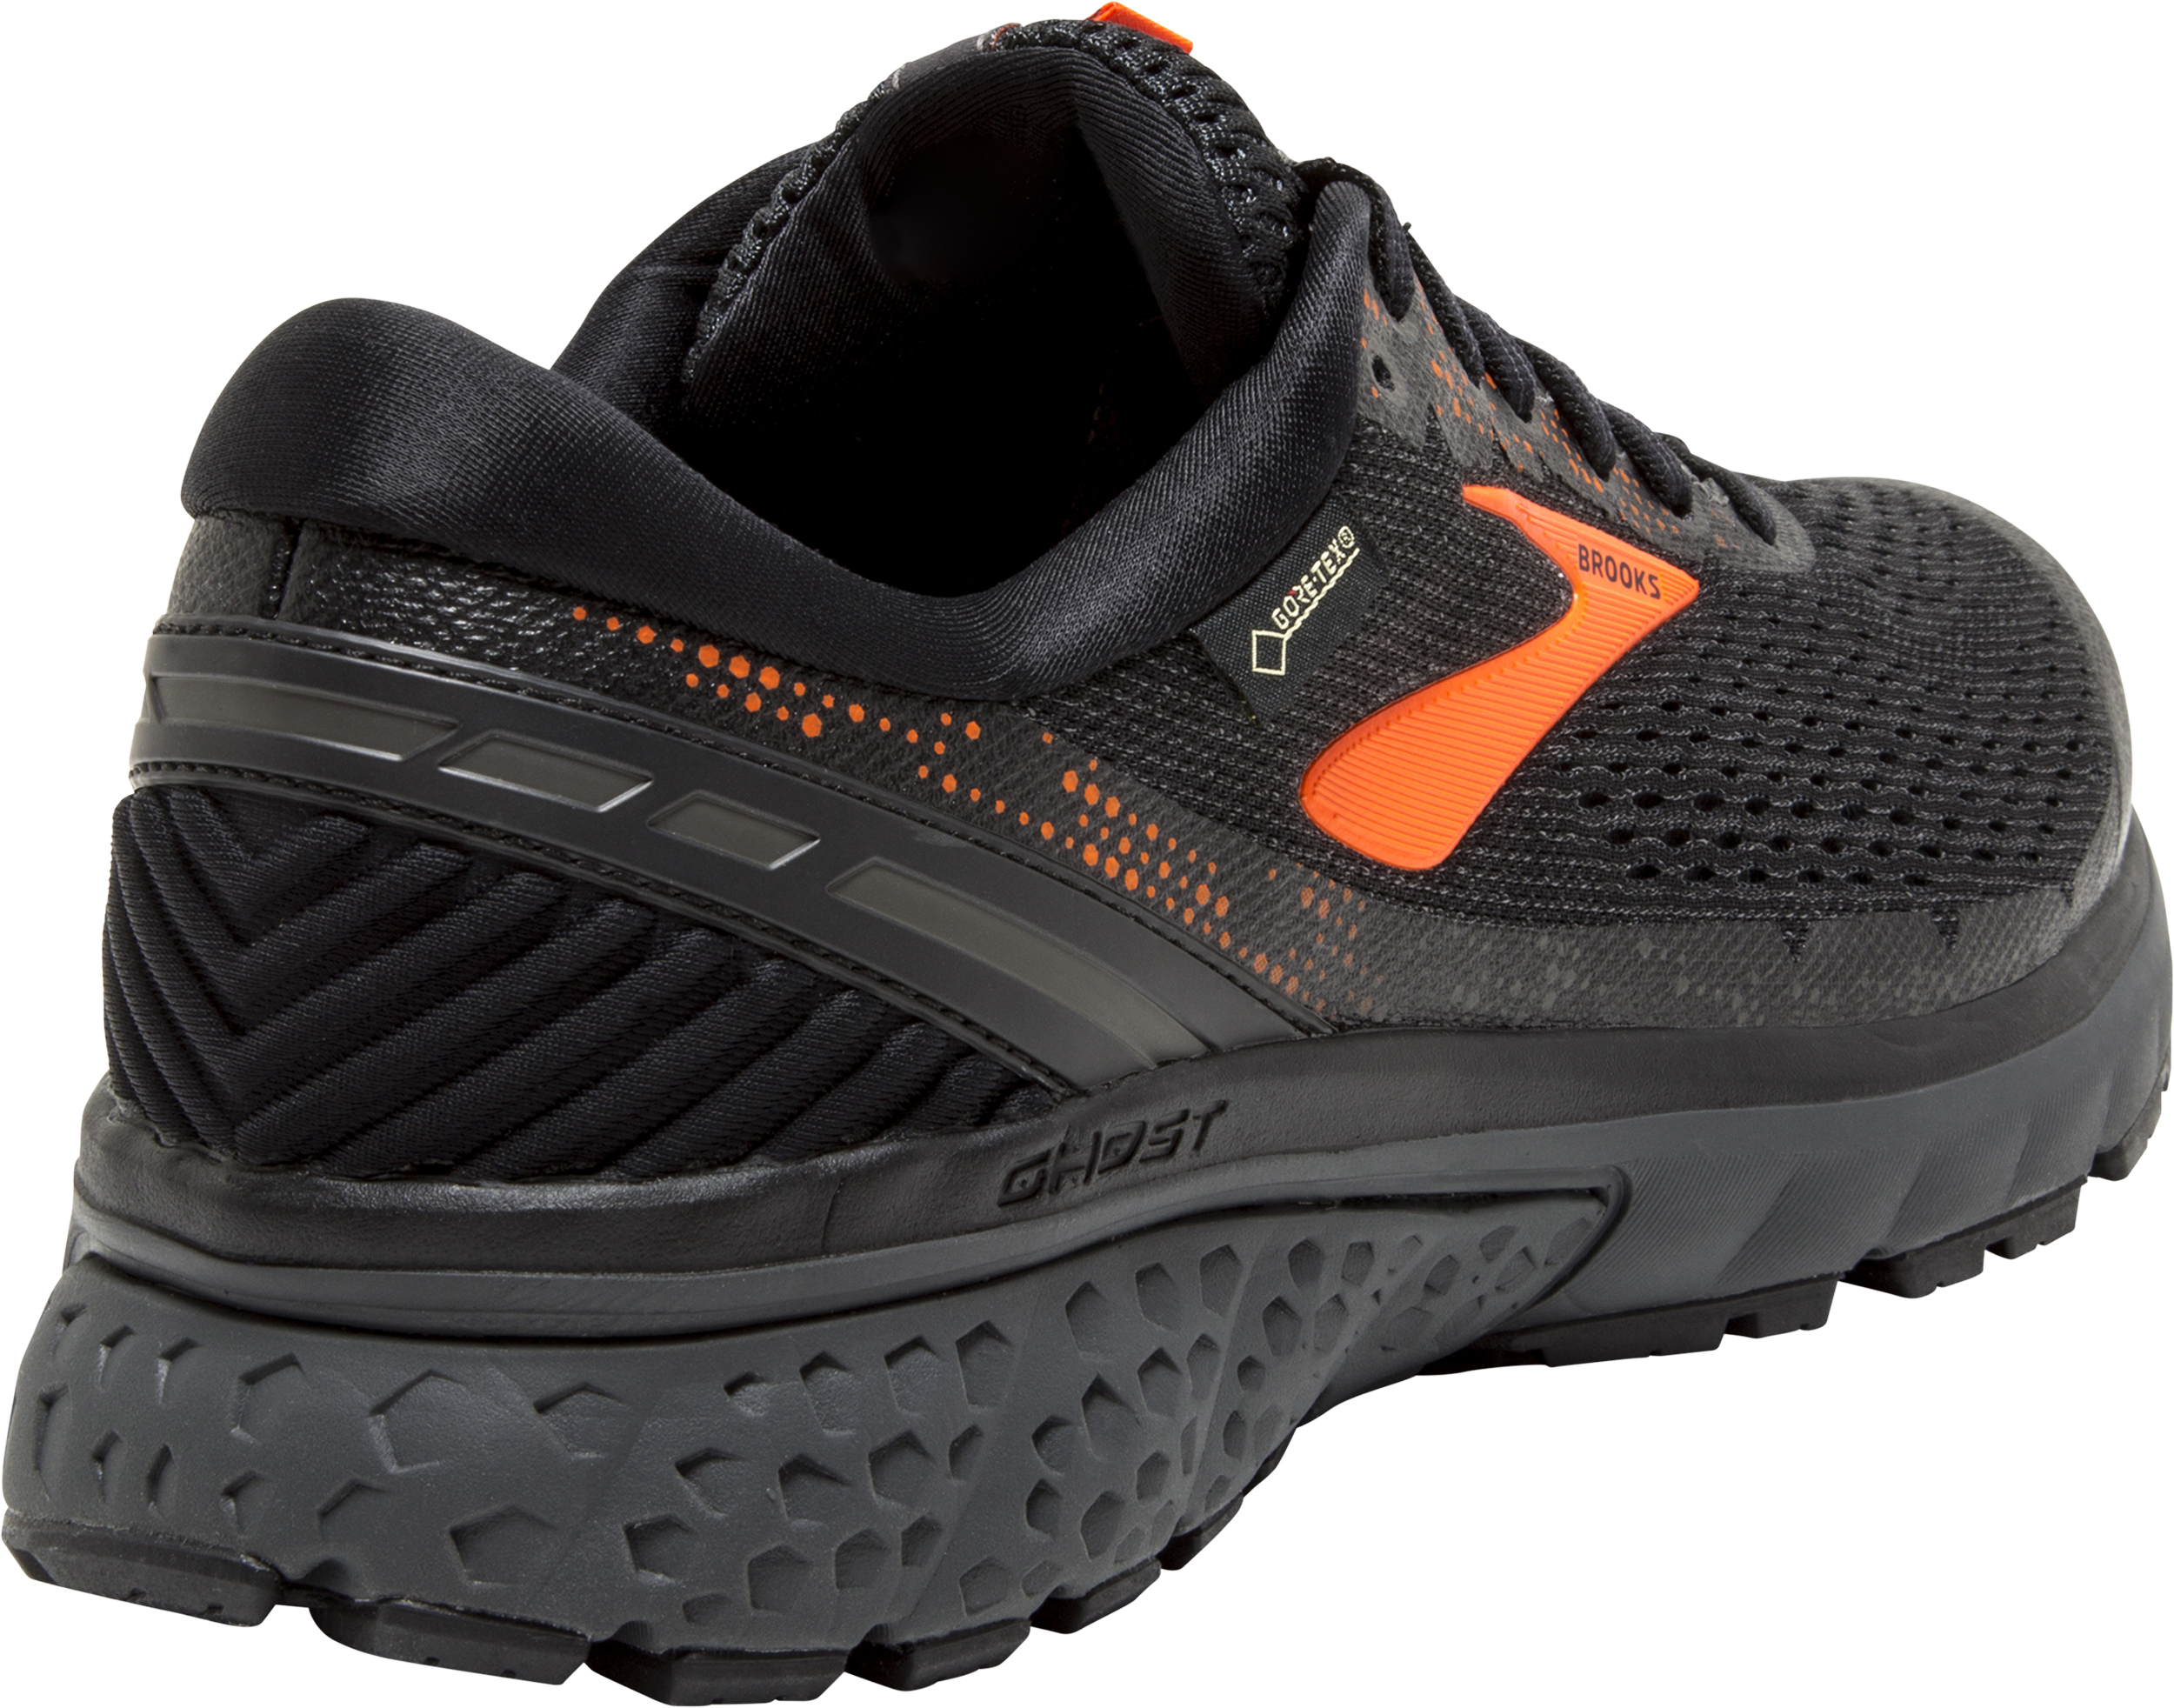 985b3b66f53a8 Brooks Ghost 11 GTX Road Running Shoes - Men s